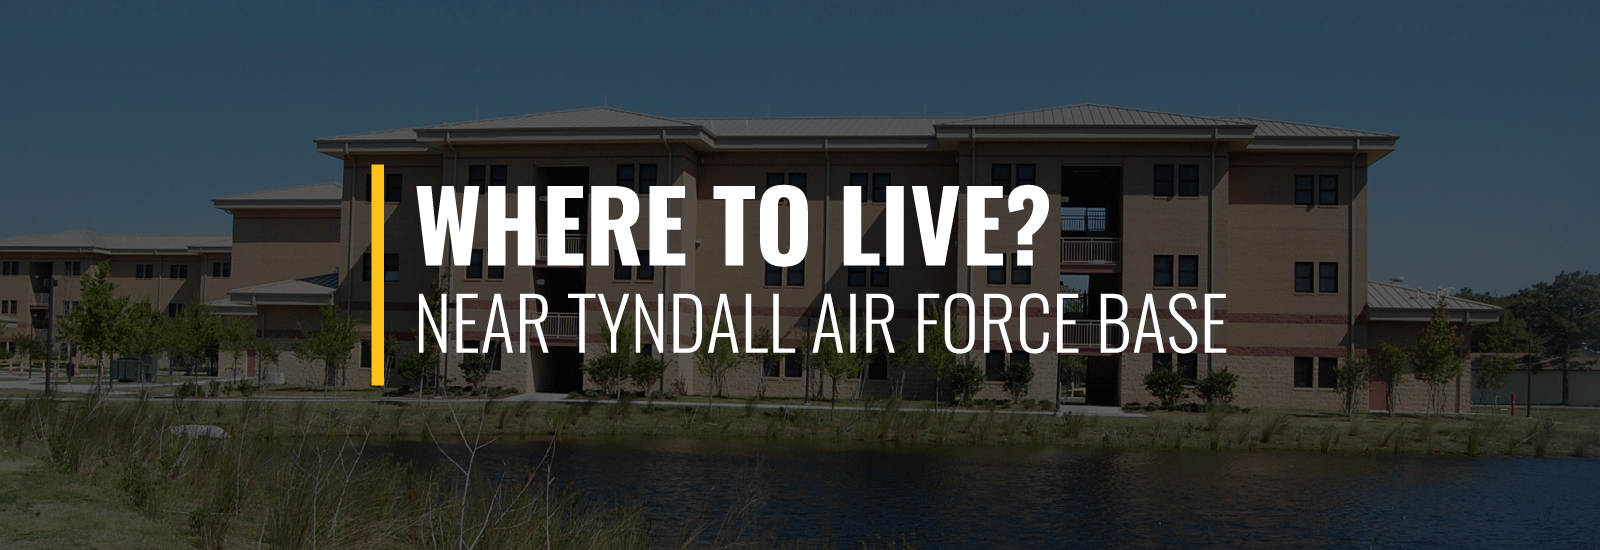 Where to Live Near Tyndall Air Force Base?